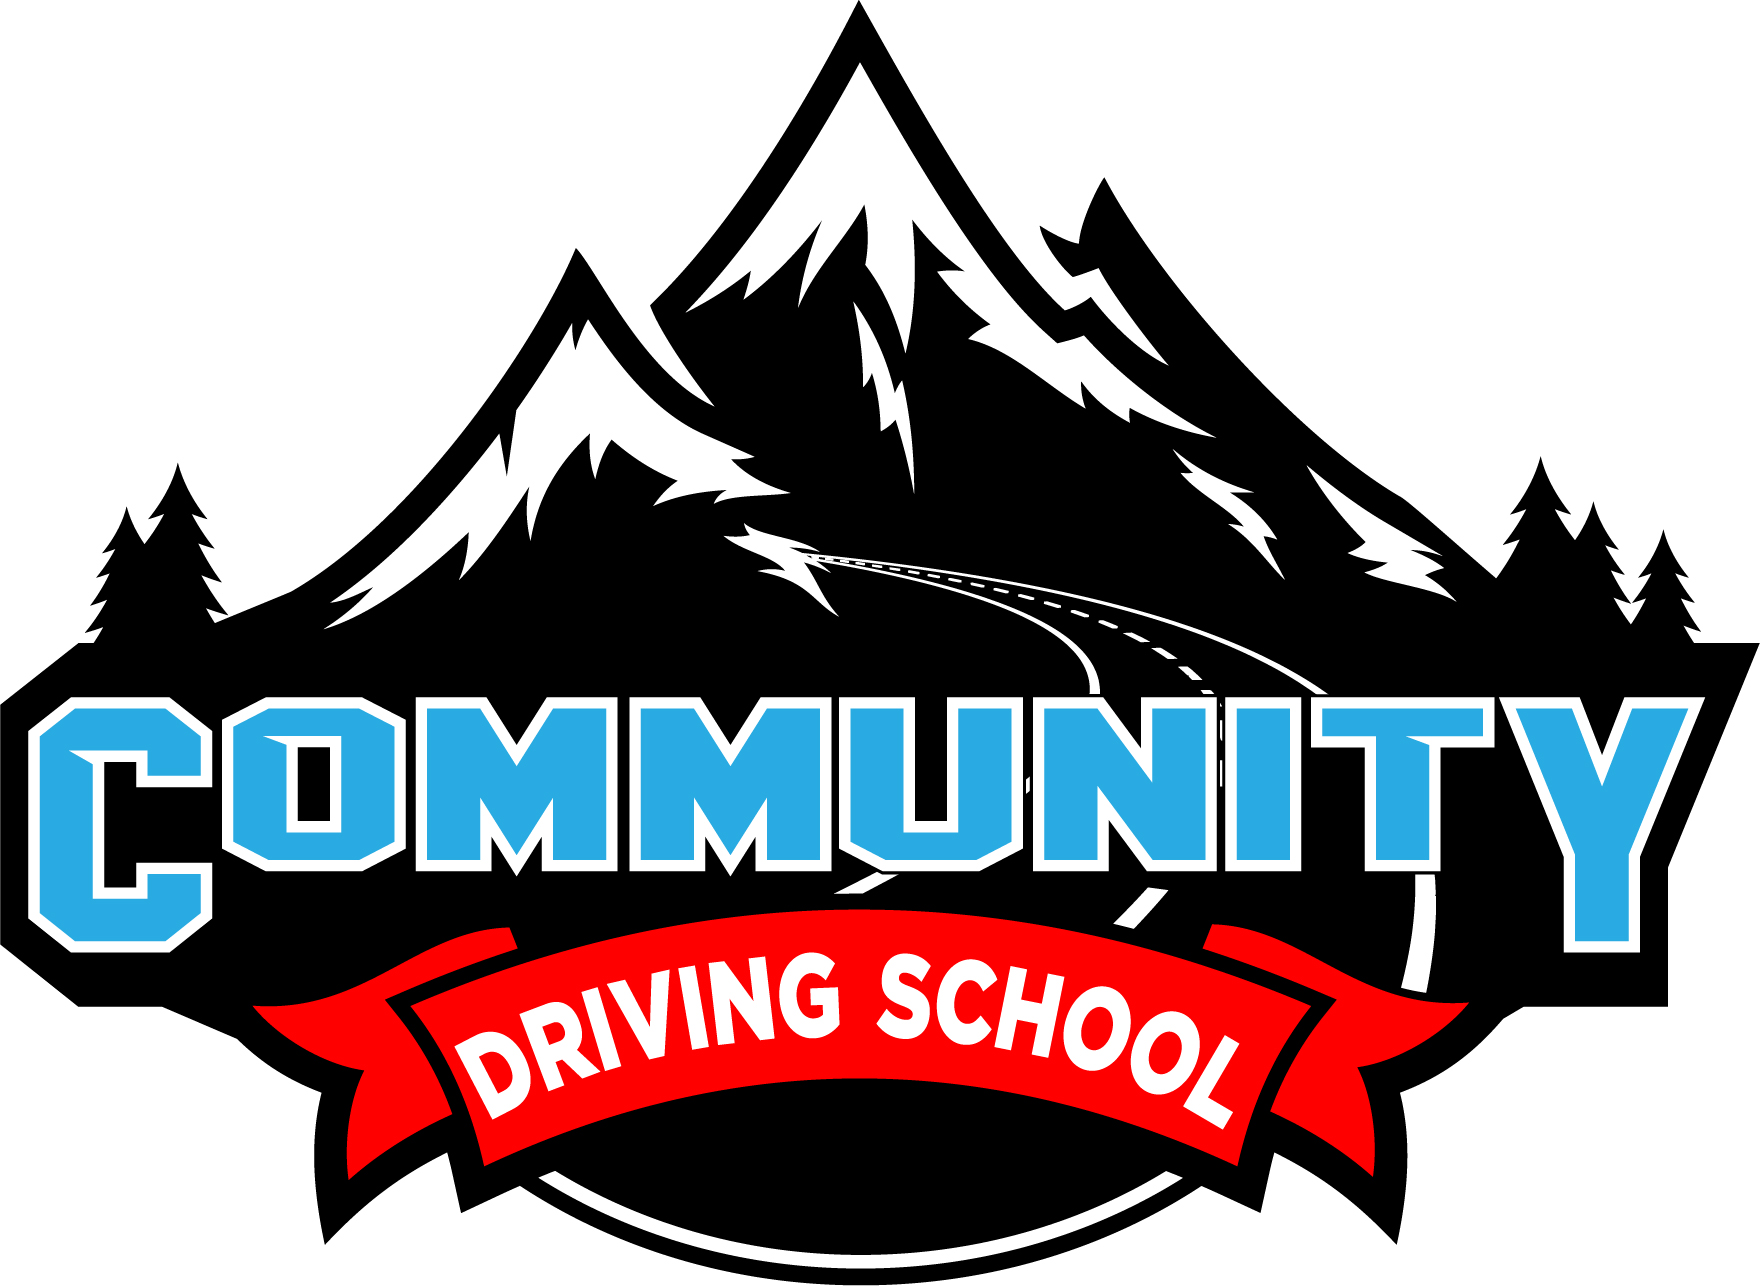 CommunityDrivingSchool